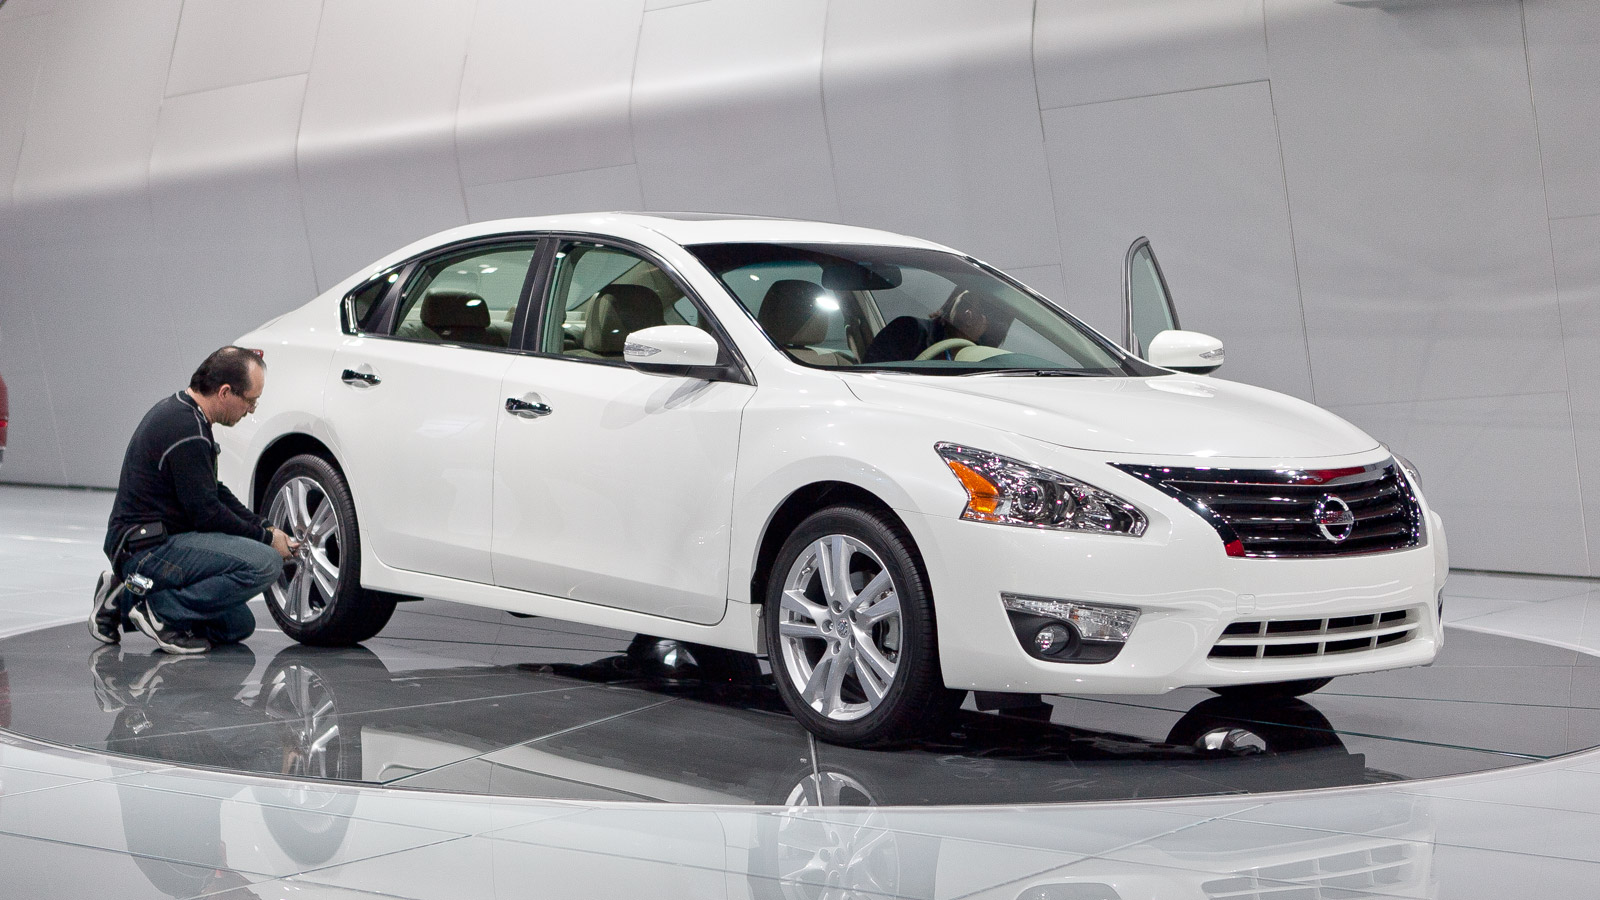 2013 Nissan Altima For Sale >> 2013 nissan altima coupe: 2013 nissan altima c2013 nissan ...